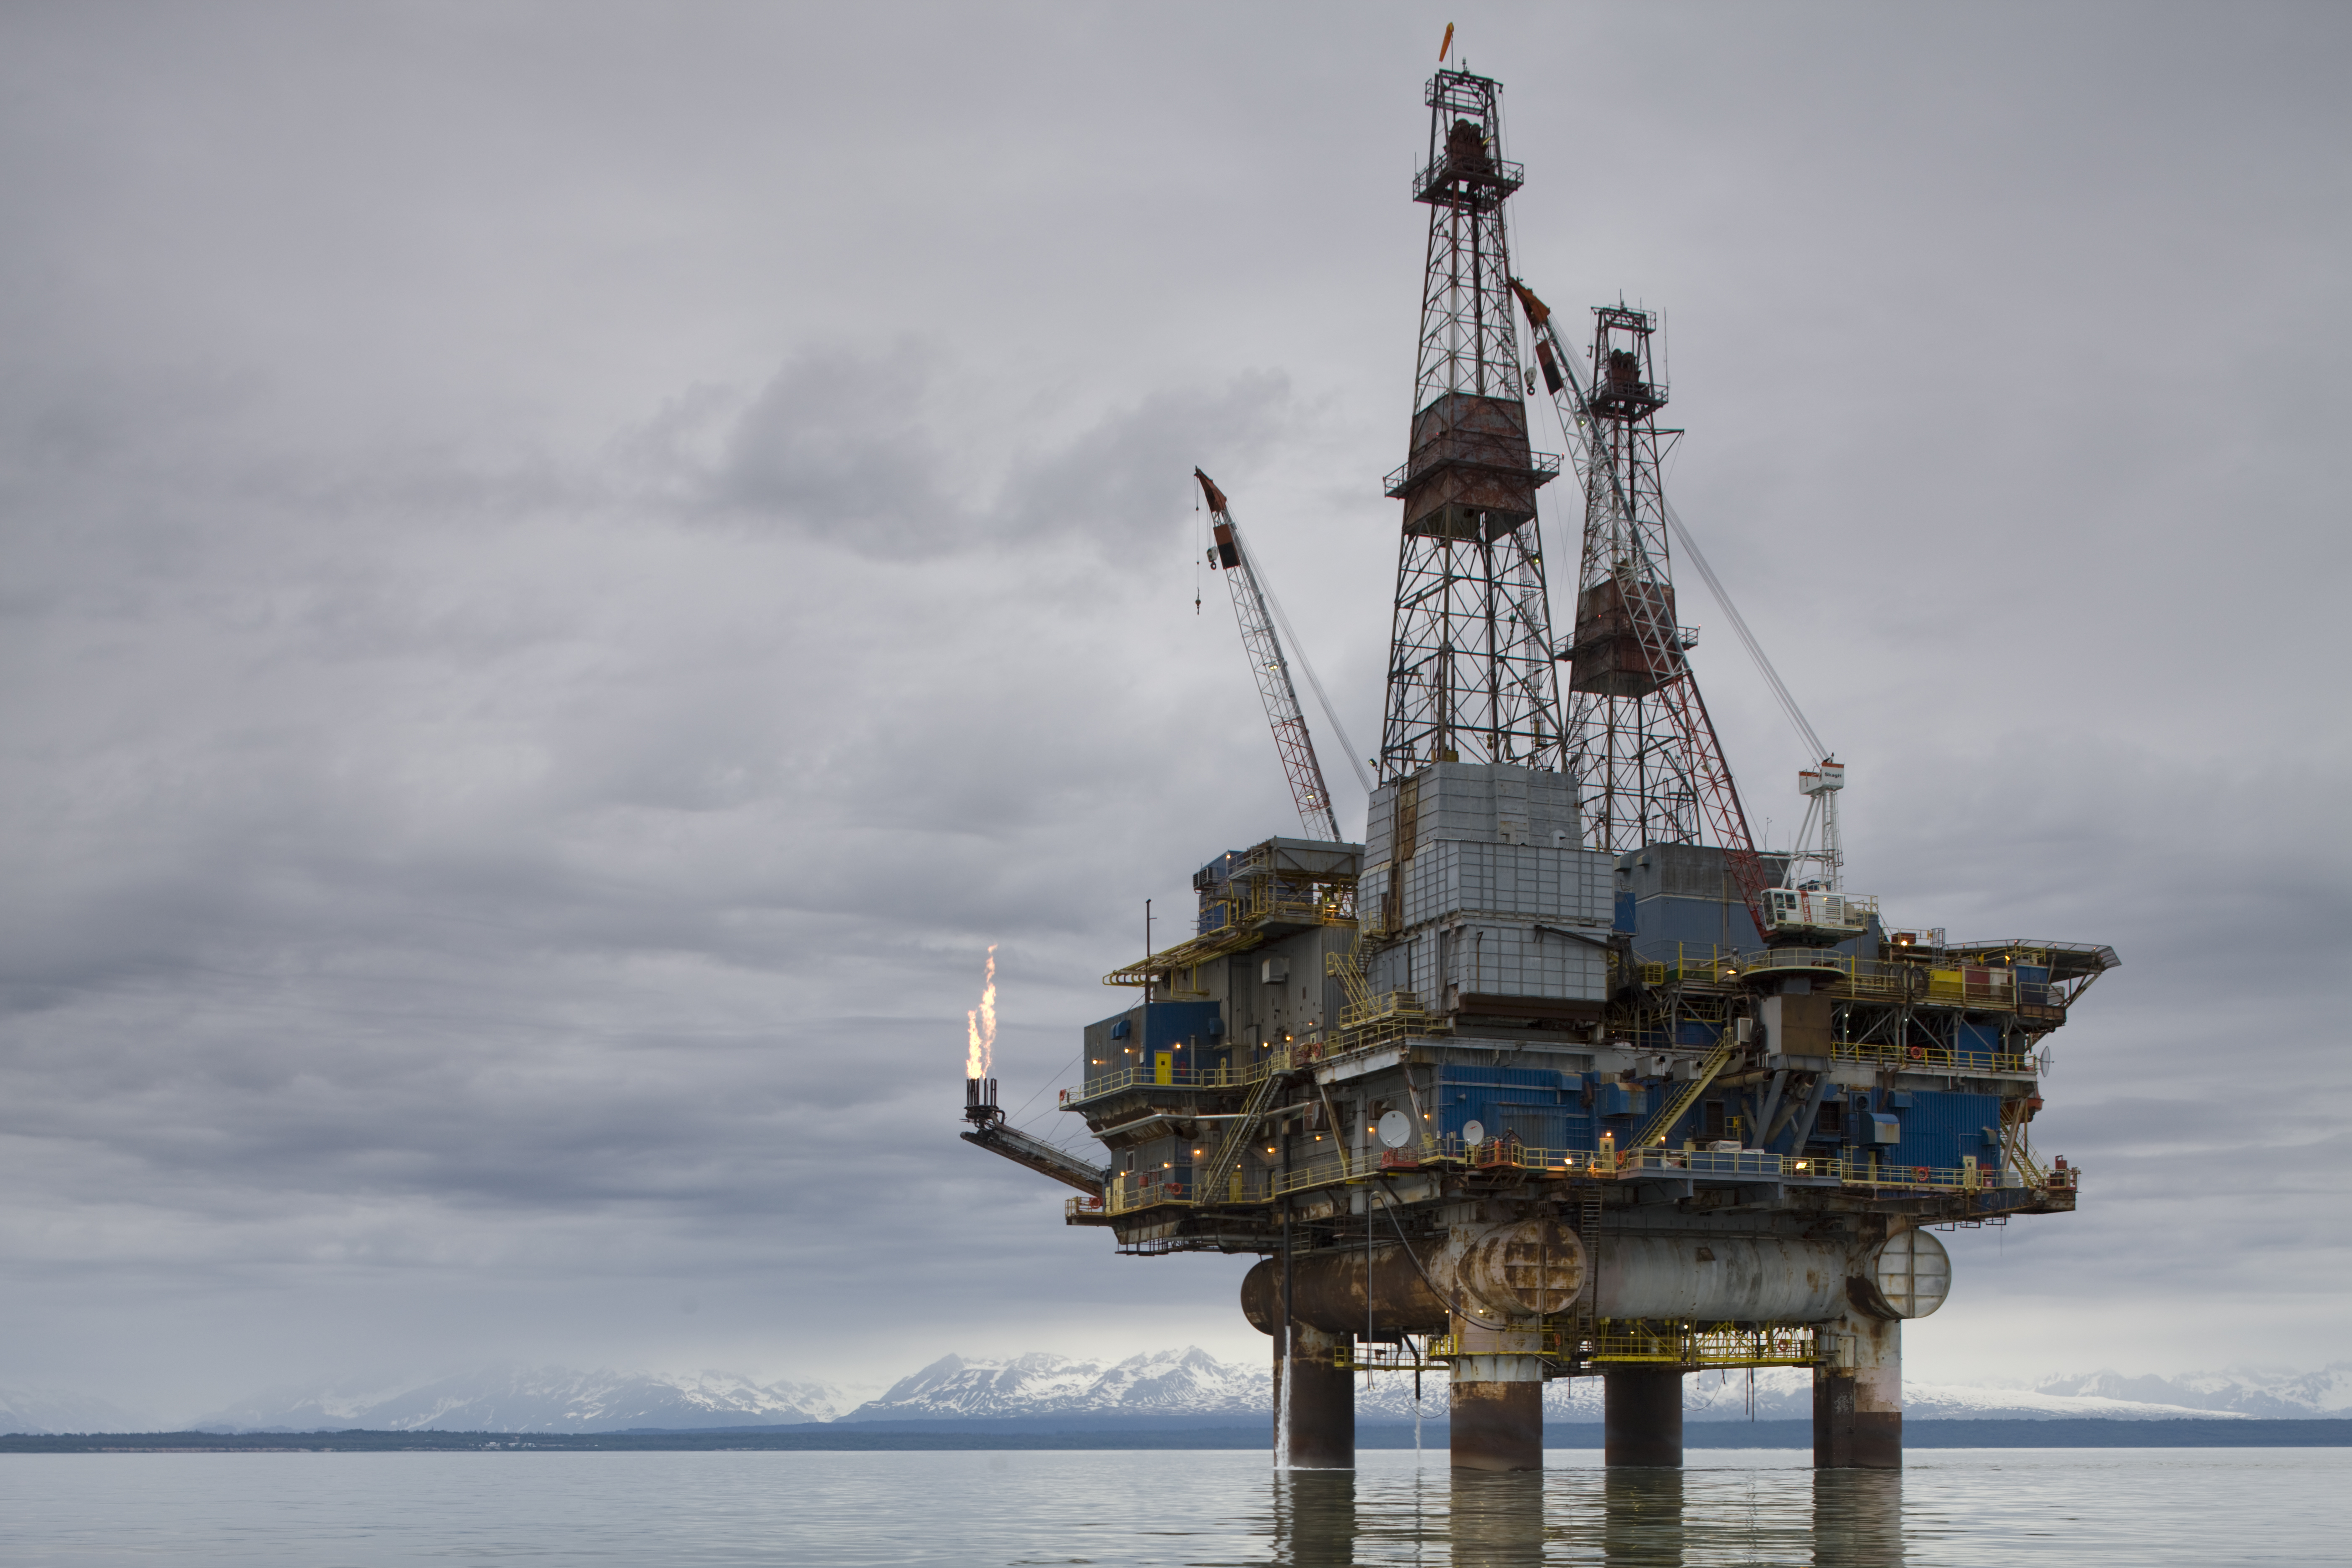 offshore-oil-drilling-rig